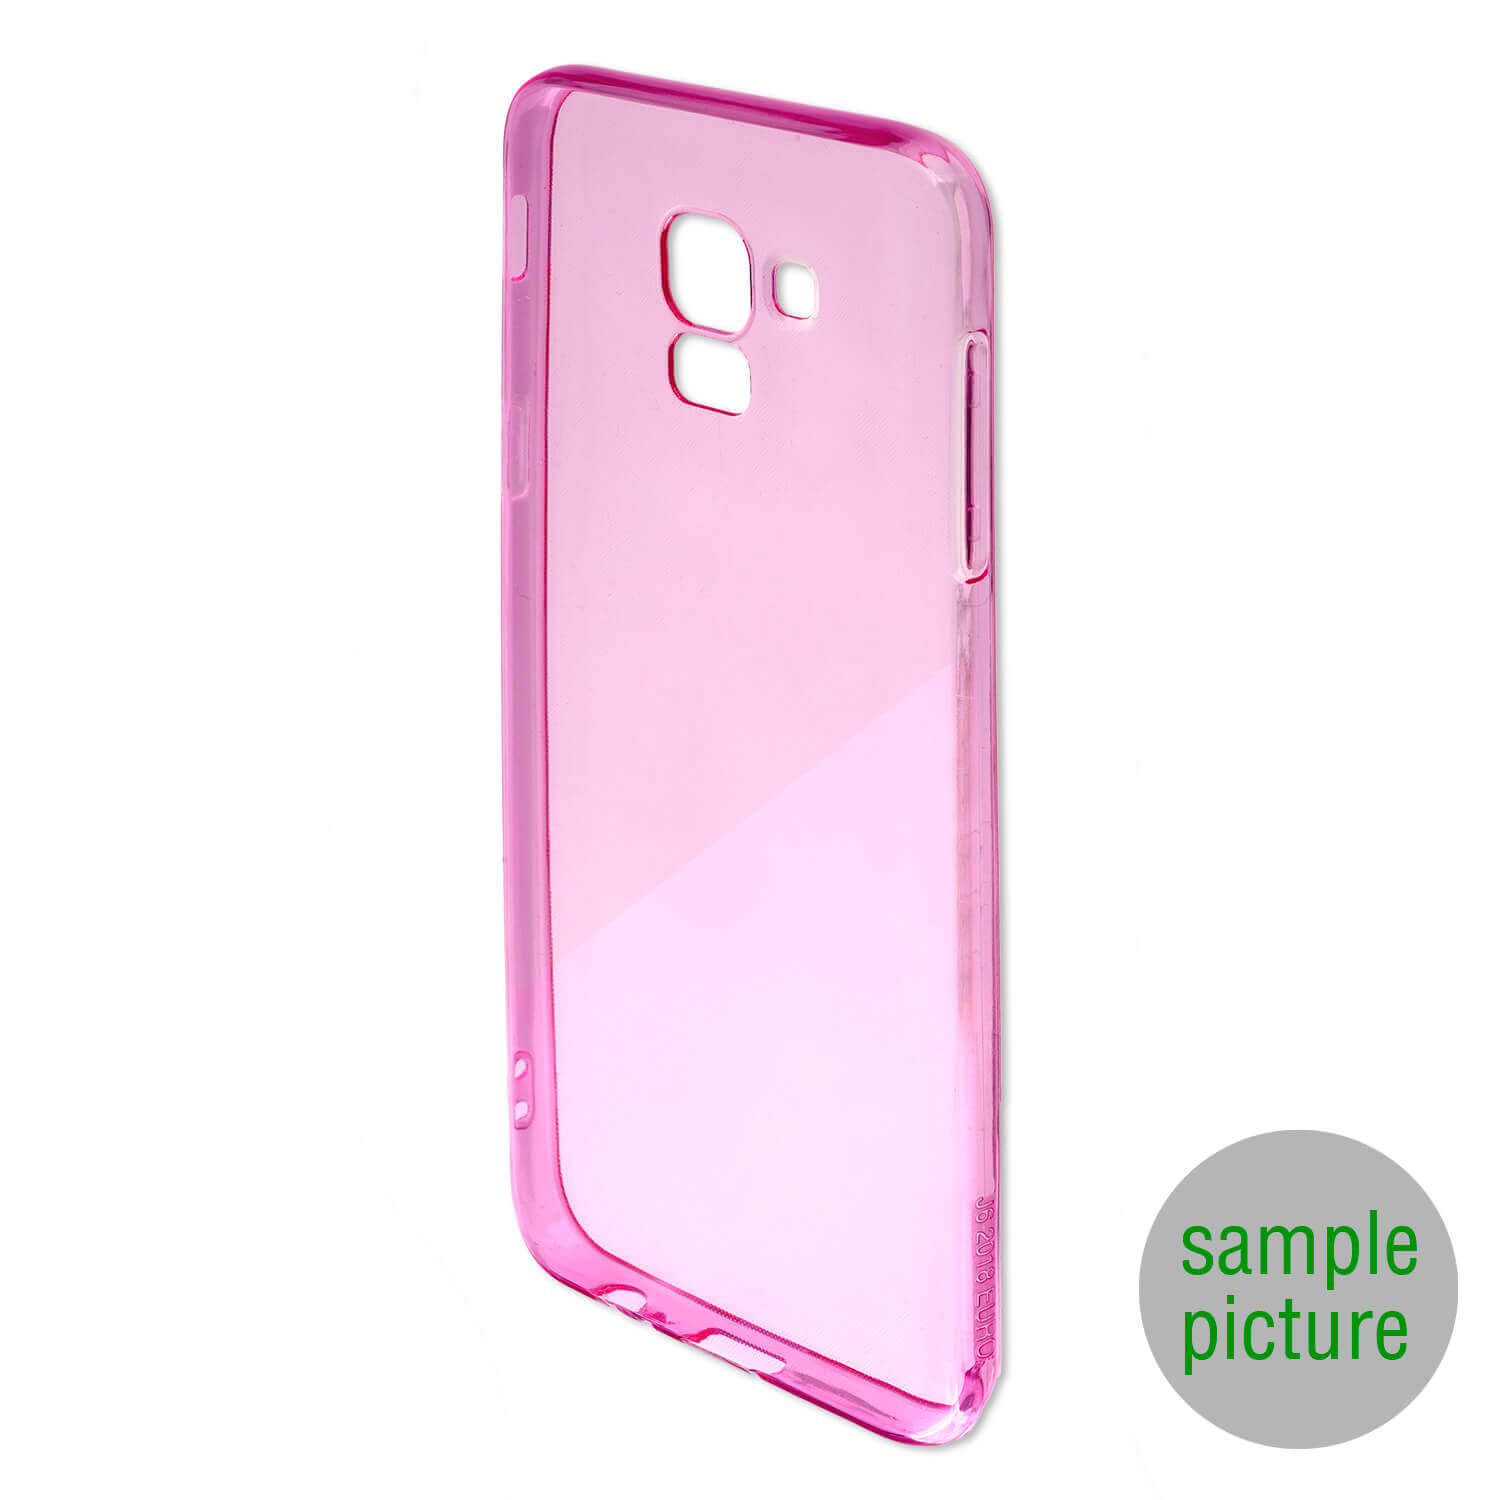 4smarts Soft Cover Invisible Slim — тънък силиконов кейс за Samsung Galaxy A50 (лилав) (bulk) - 2